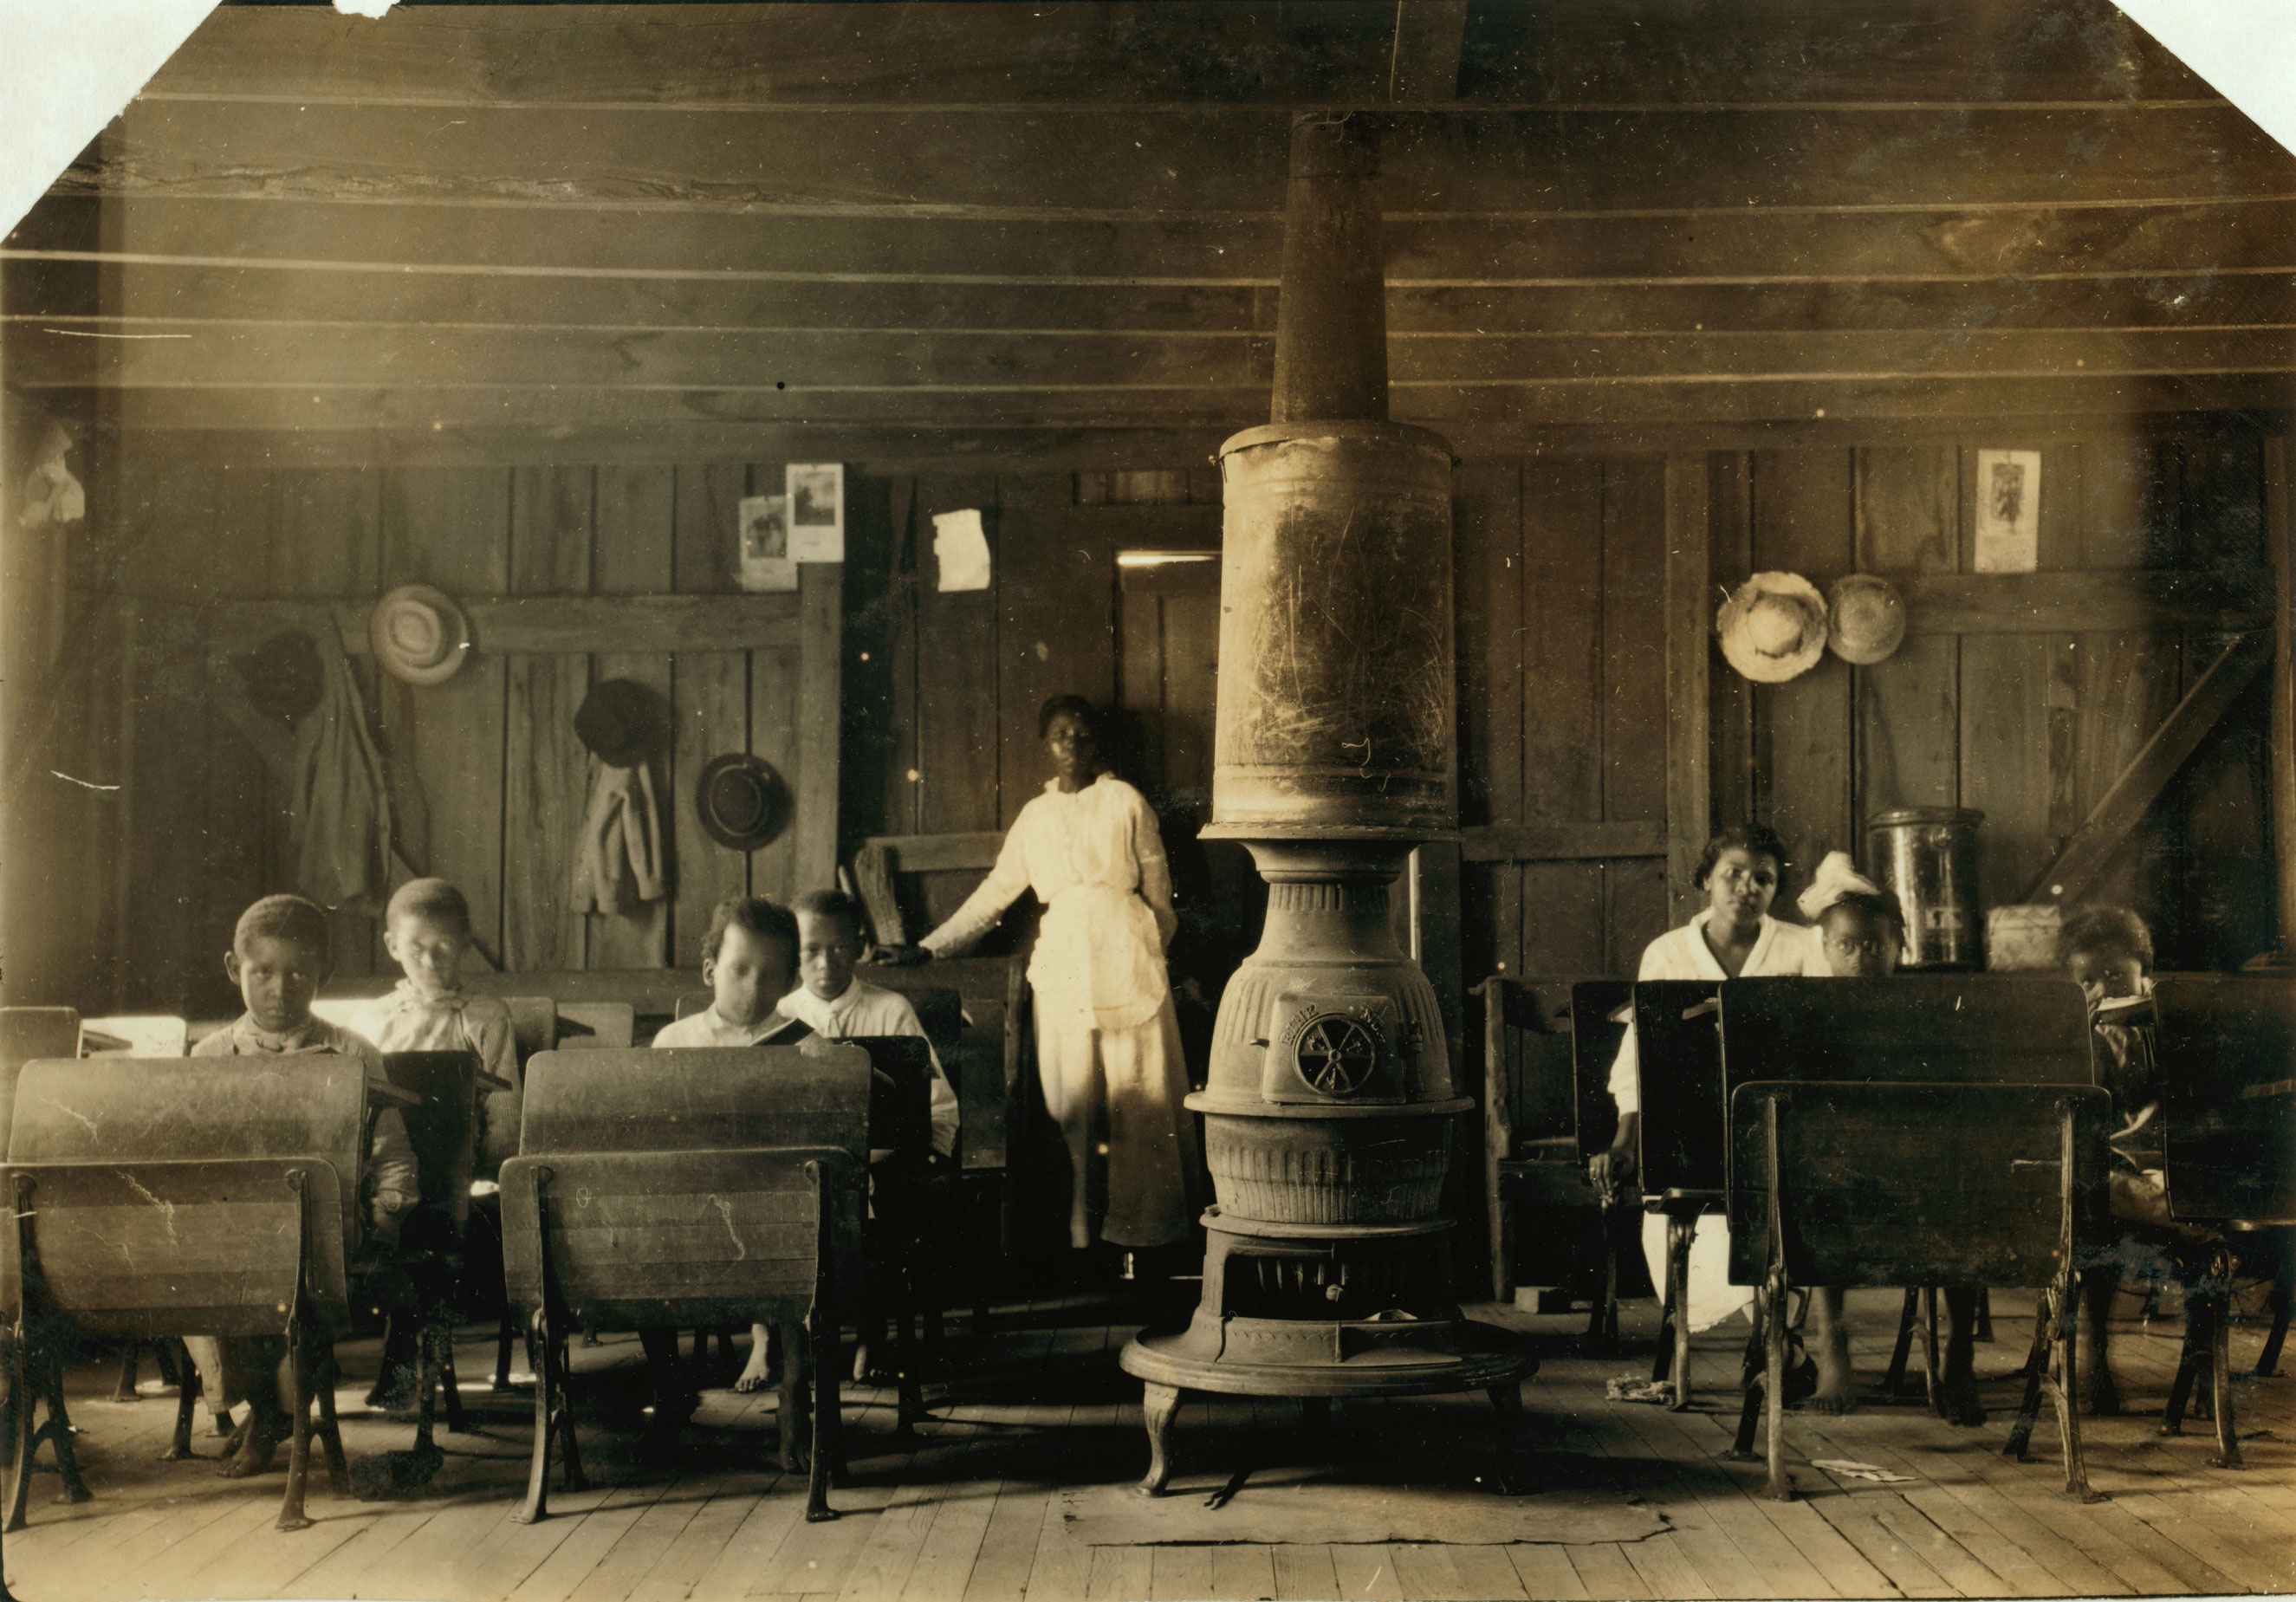 Colored School at Anthoston. Census 27, enrollment 12, attendance 7. Teacher expects 19 to be enrolled after work is over.  Tobacco keeps them out and they are short of hands.  Sept. 1916. Henderson County, Kentucky.